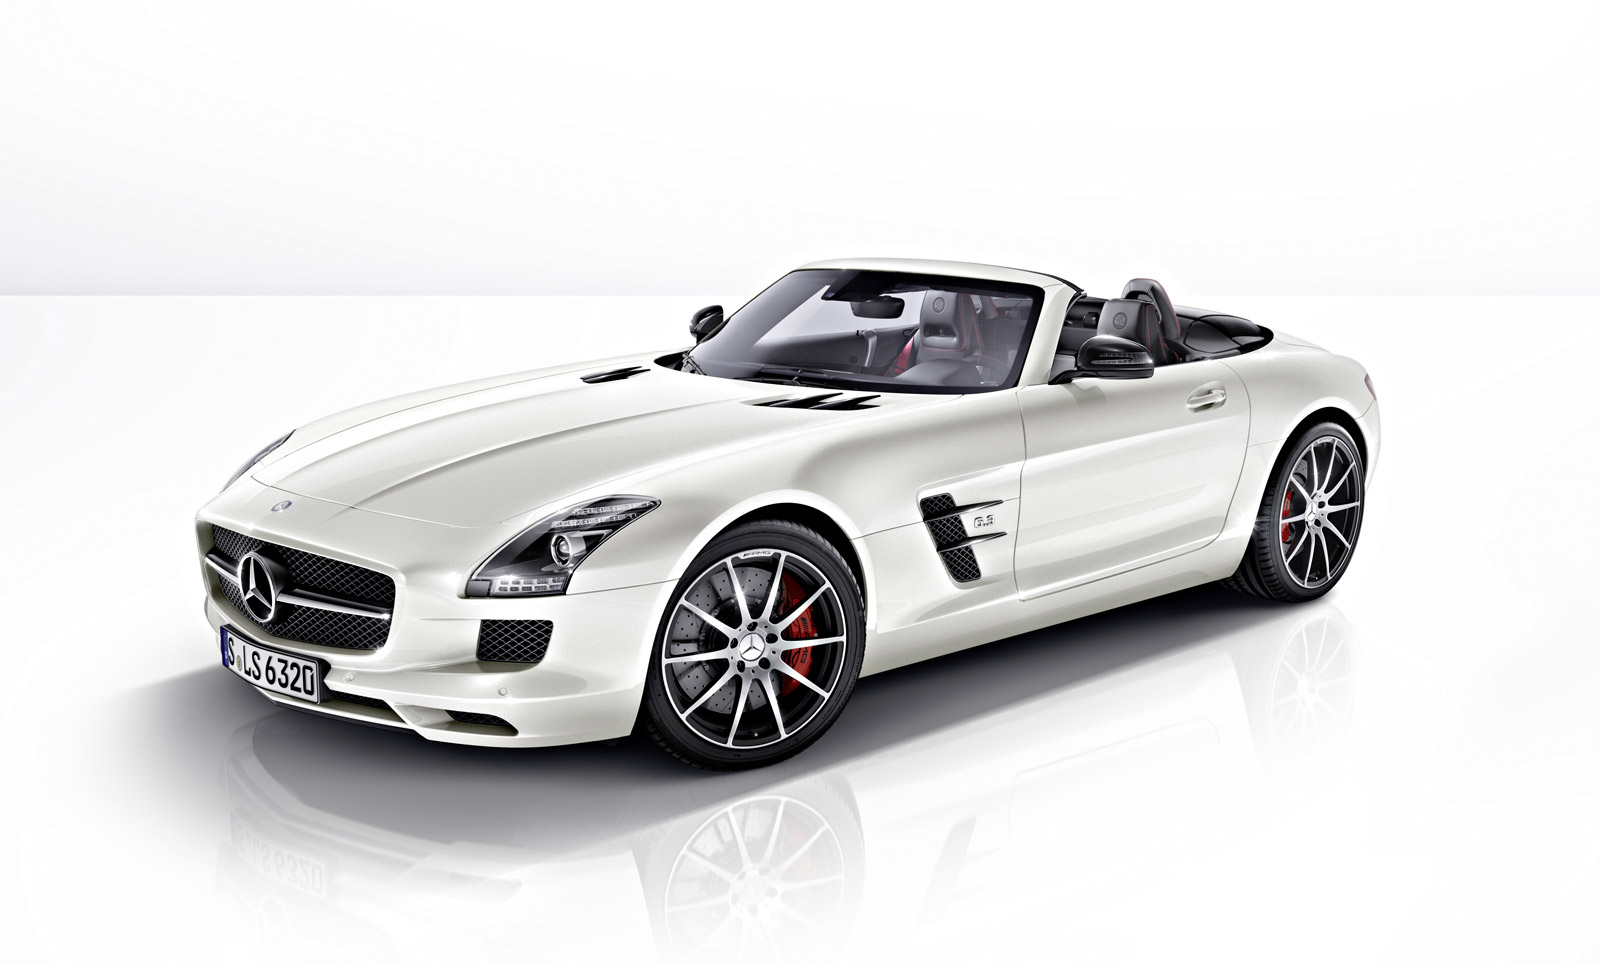 Mercedes benz prices 2013 sls amg gt and 2013 gl63 amg models for Mercedes benz gl63 price